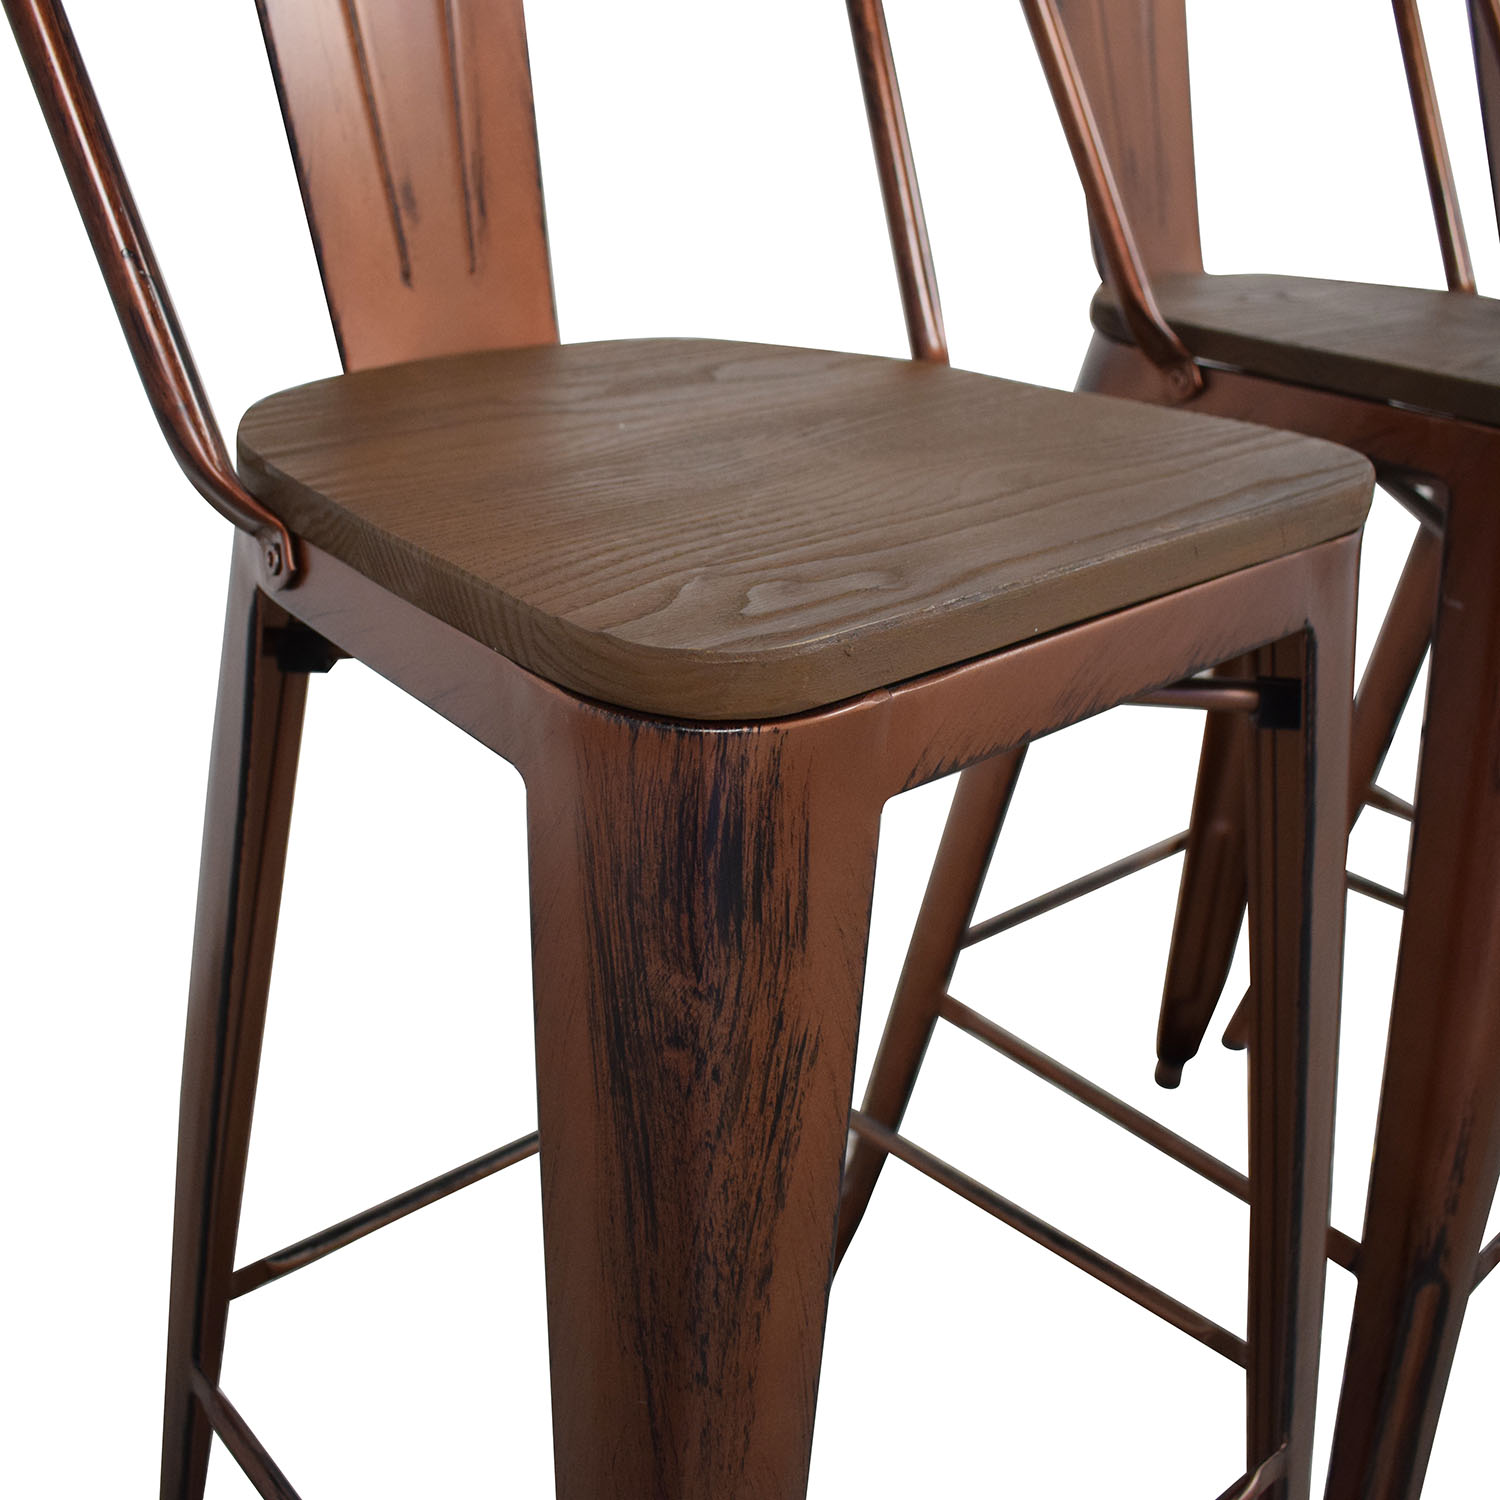 Overstock Overstock Tabouret Wood Seat Brushed Copper Bistro Bar Stools price